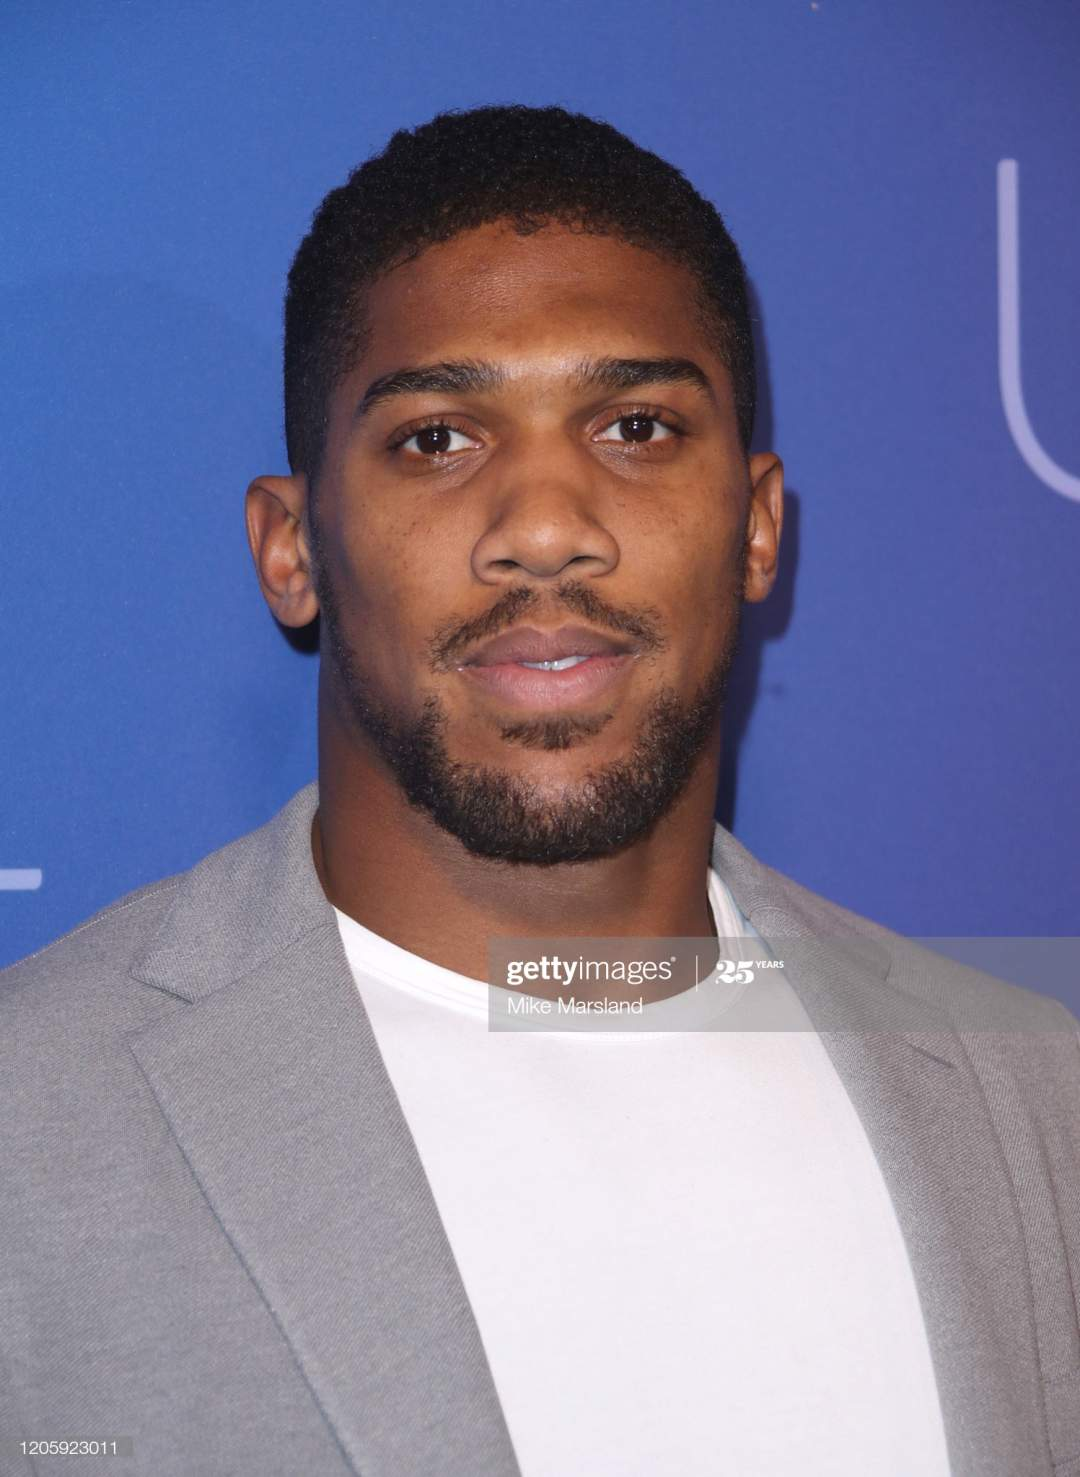 Anthony Joshua Attends The Sky Up Next 2020 At Tate Modern On 12 In Picture Id1205923011?s=28